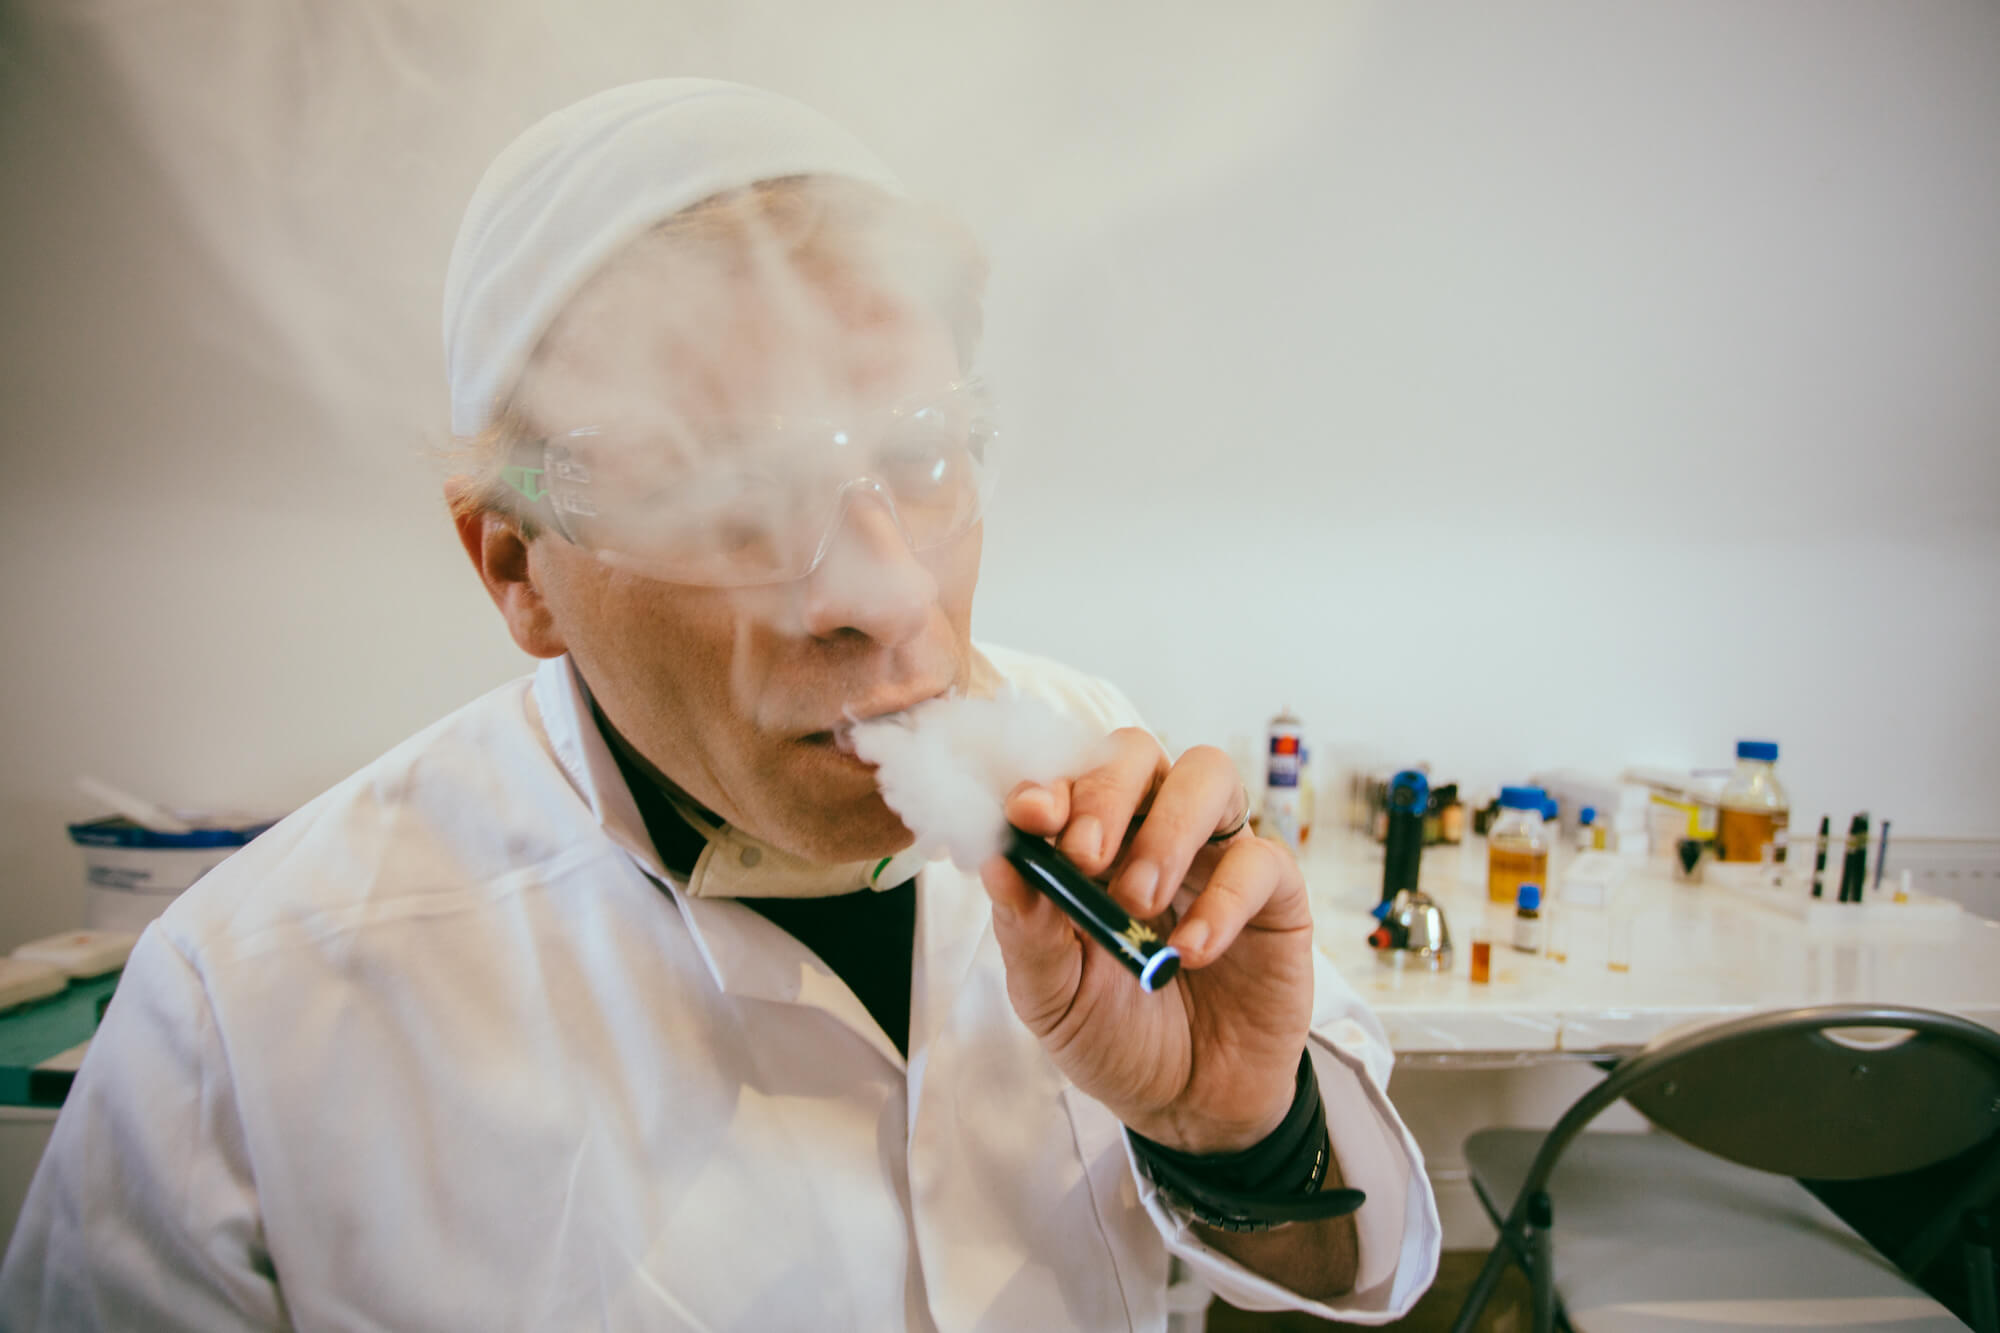 5 Things You Should Know Before Vaping CBD Oil